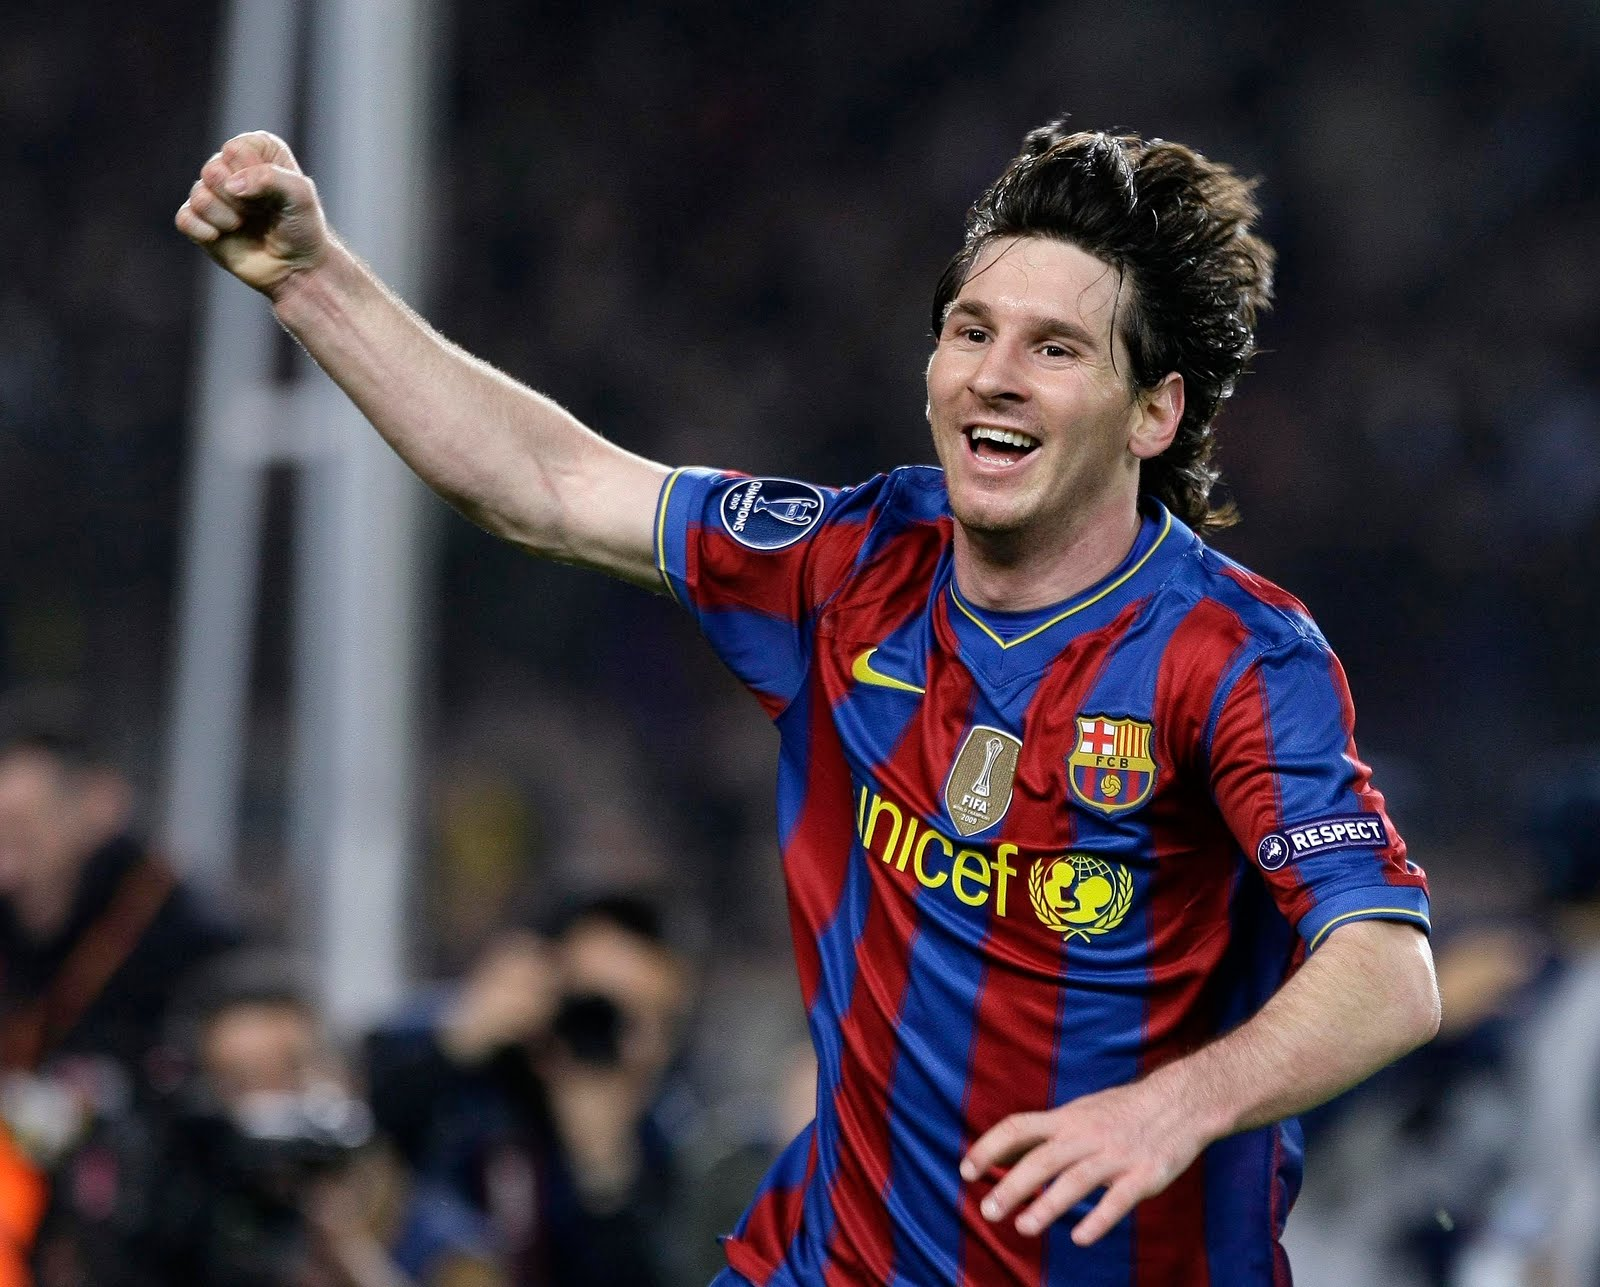 Lionel Messi Wallpapers HD Latest 2012 1600x1287